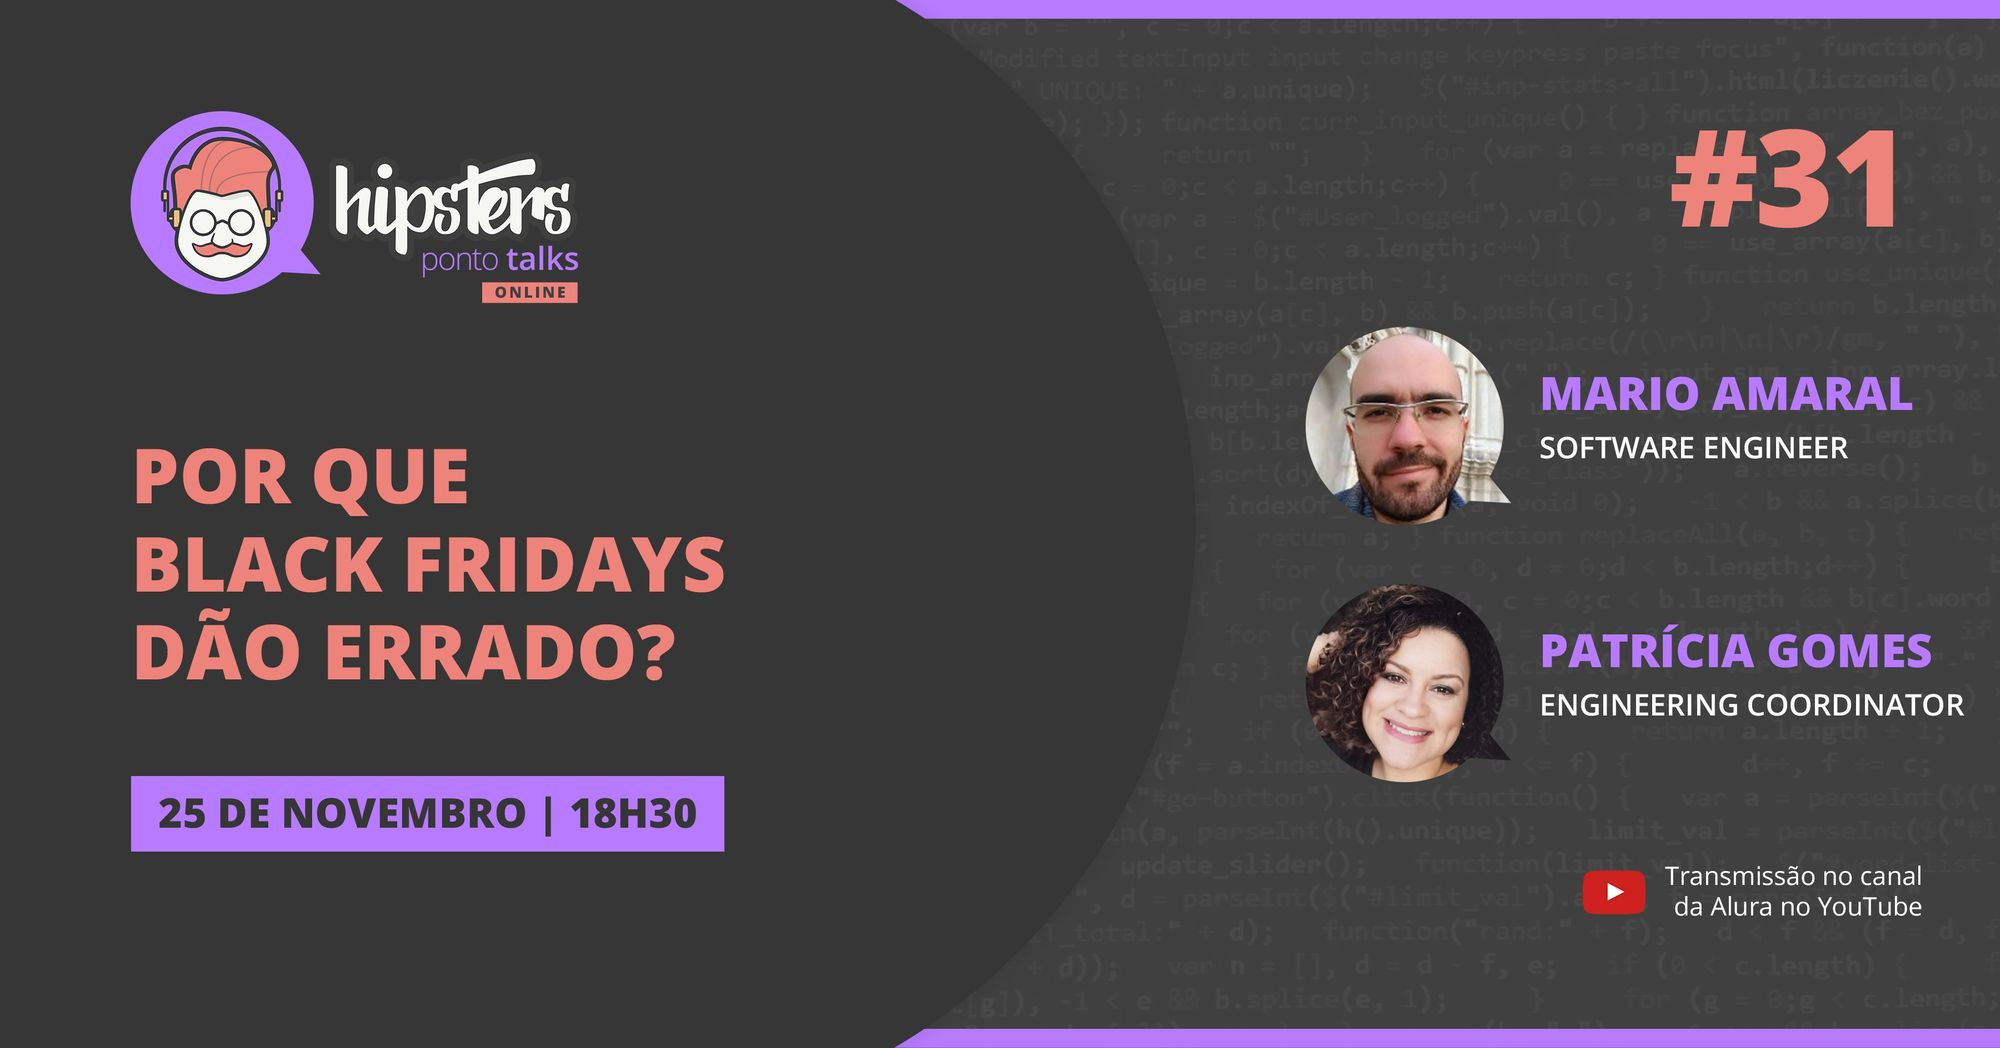 Por Que Black Fridays Dão Errado? - Hipsters.talks